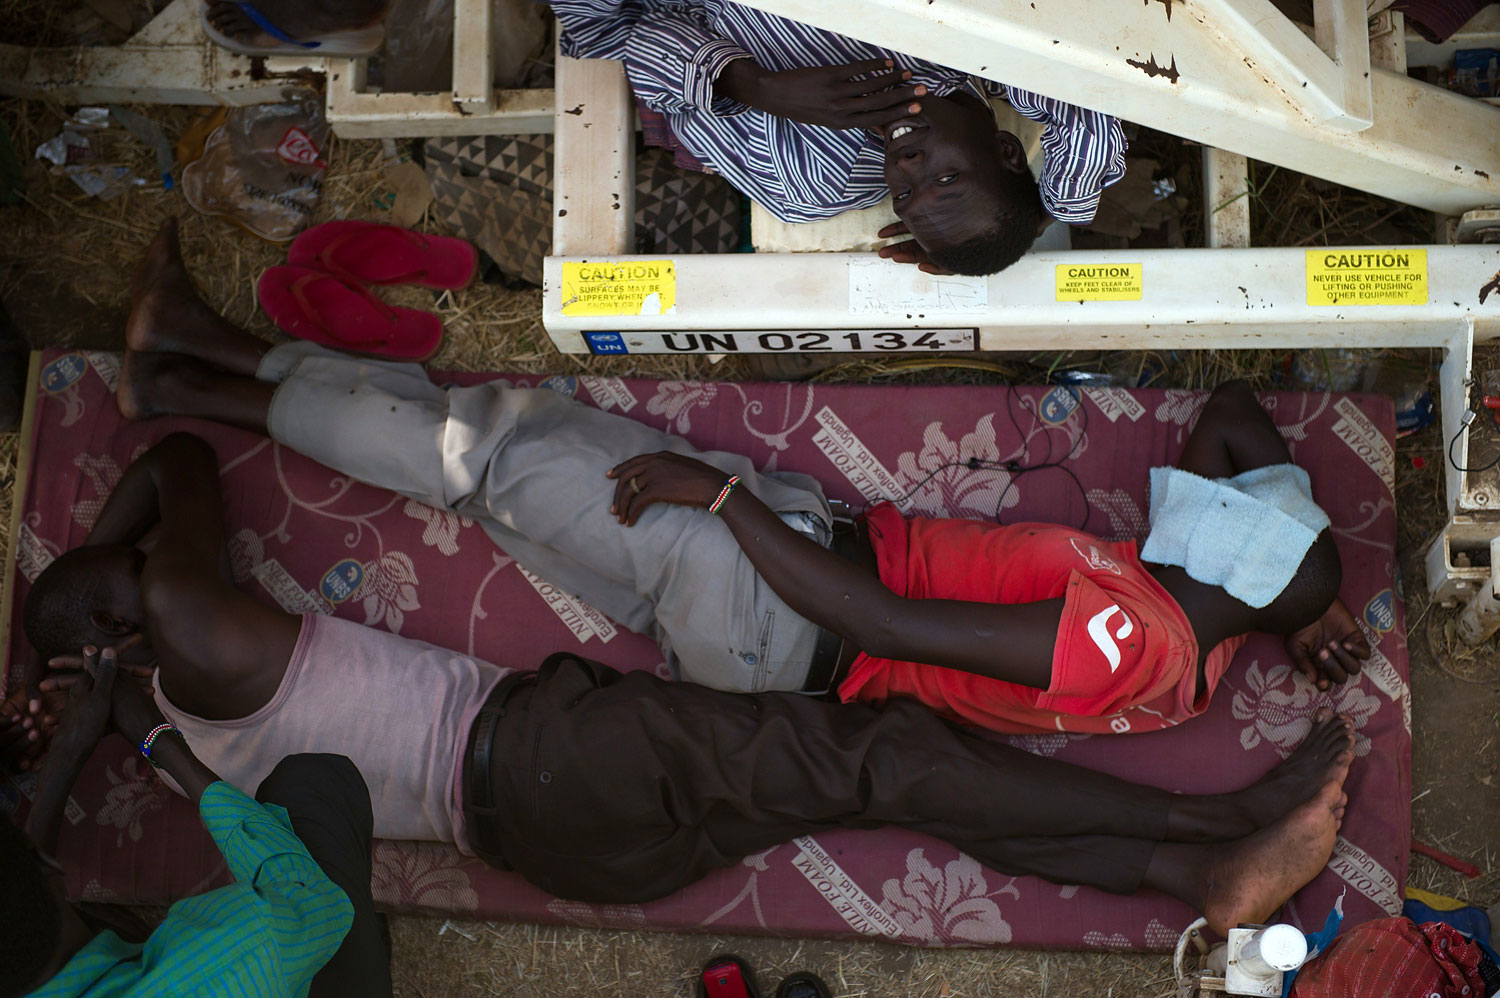 South Sudanese men lay down between makeshift shelters in a spontaneous camp for internally displaced persons at the United Nations Mission to South Sudan base in Juba, South Sudan, on Jan. 9, 2014.